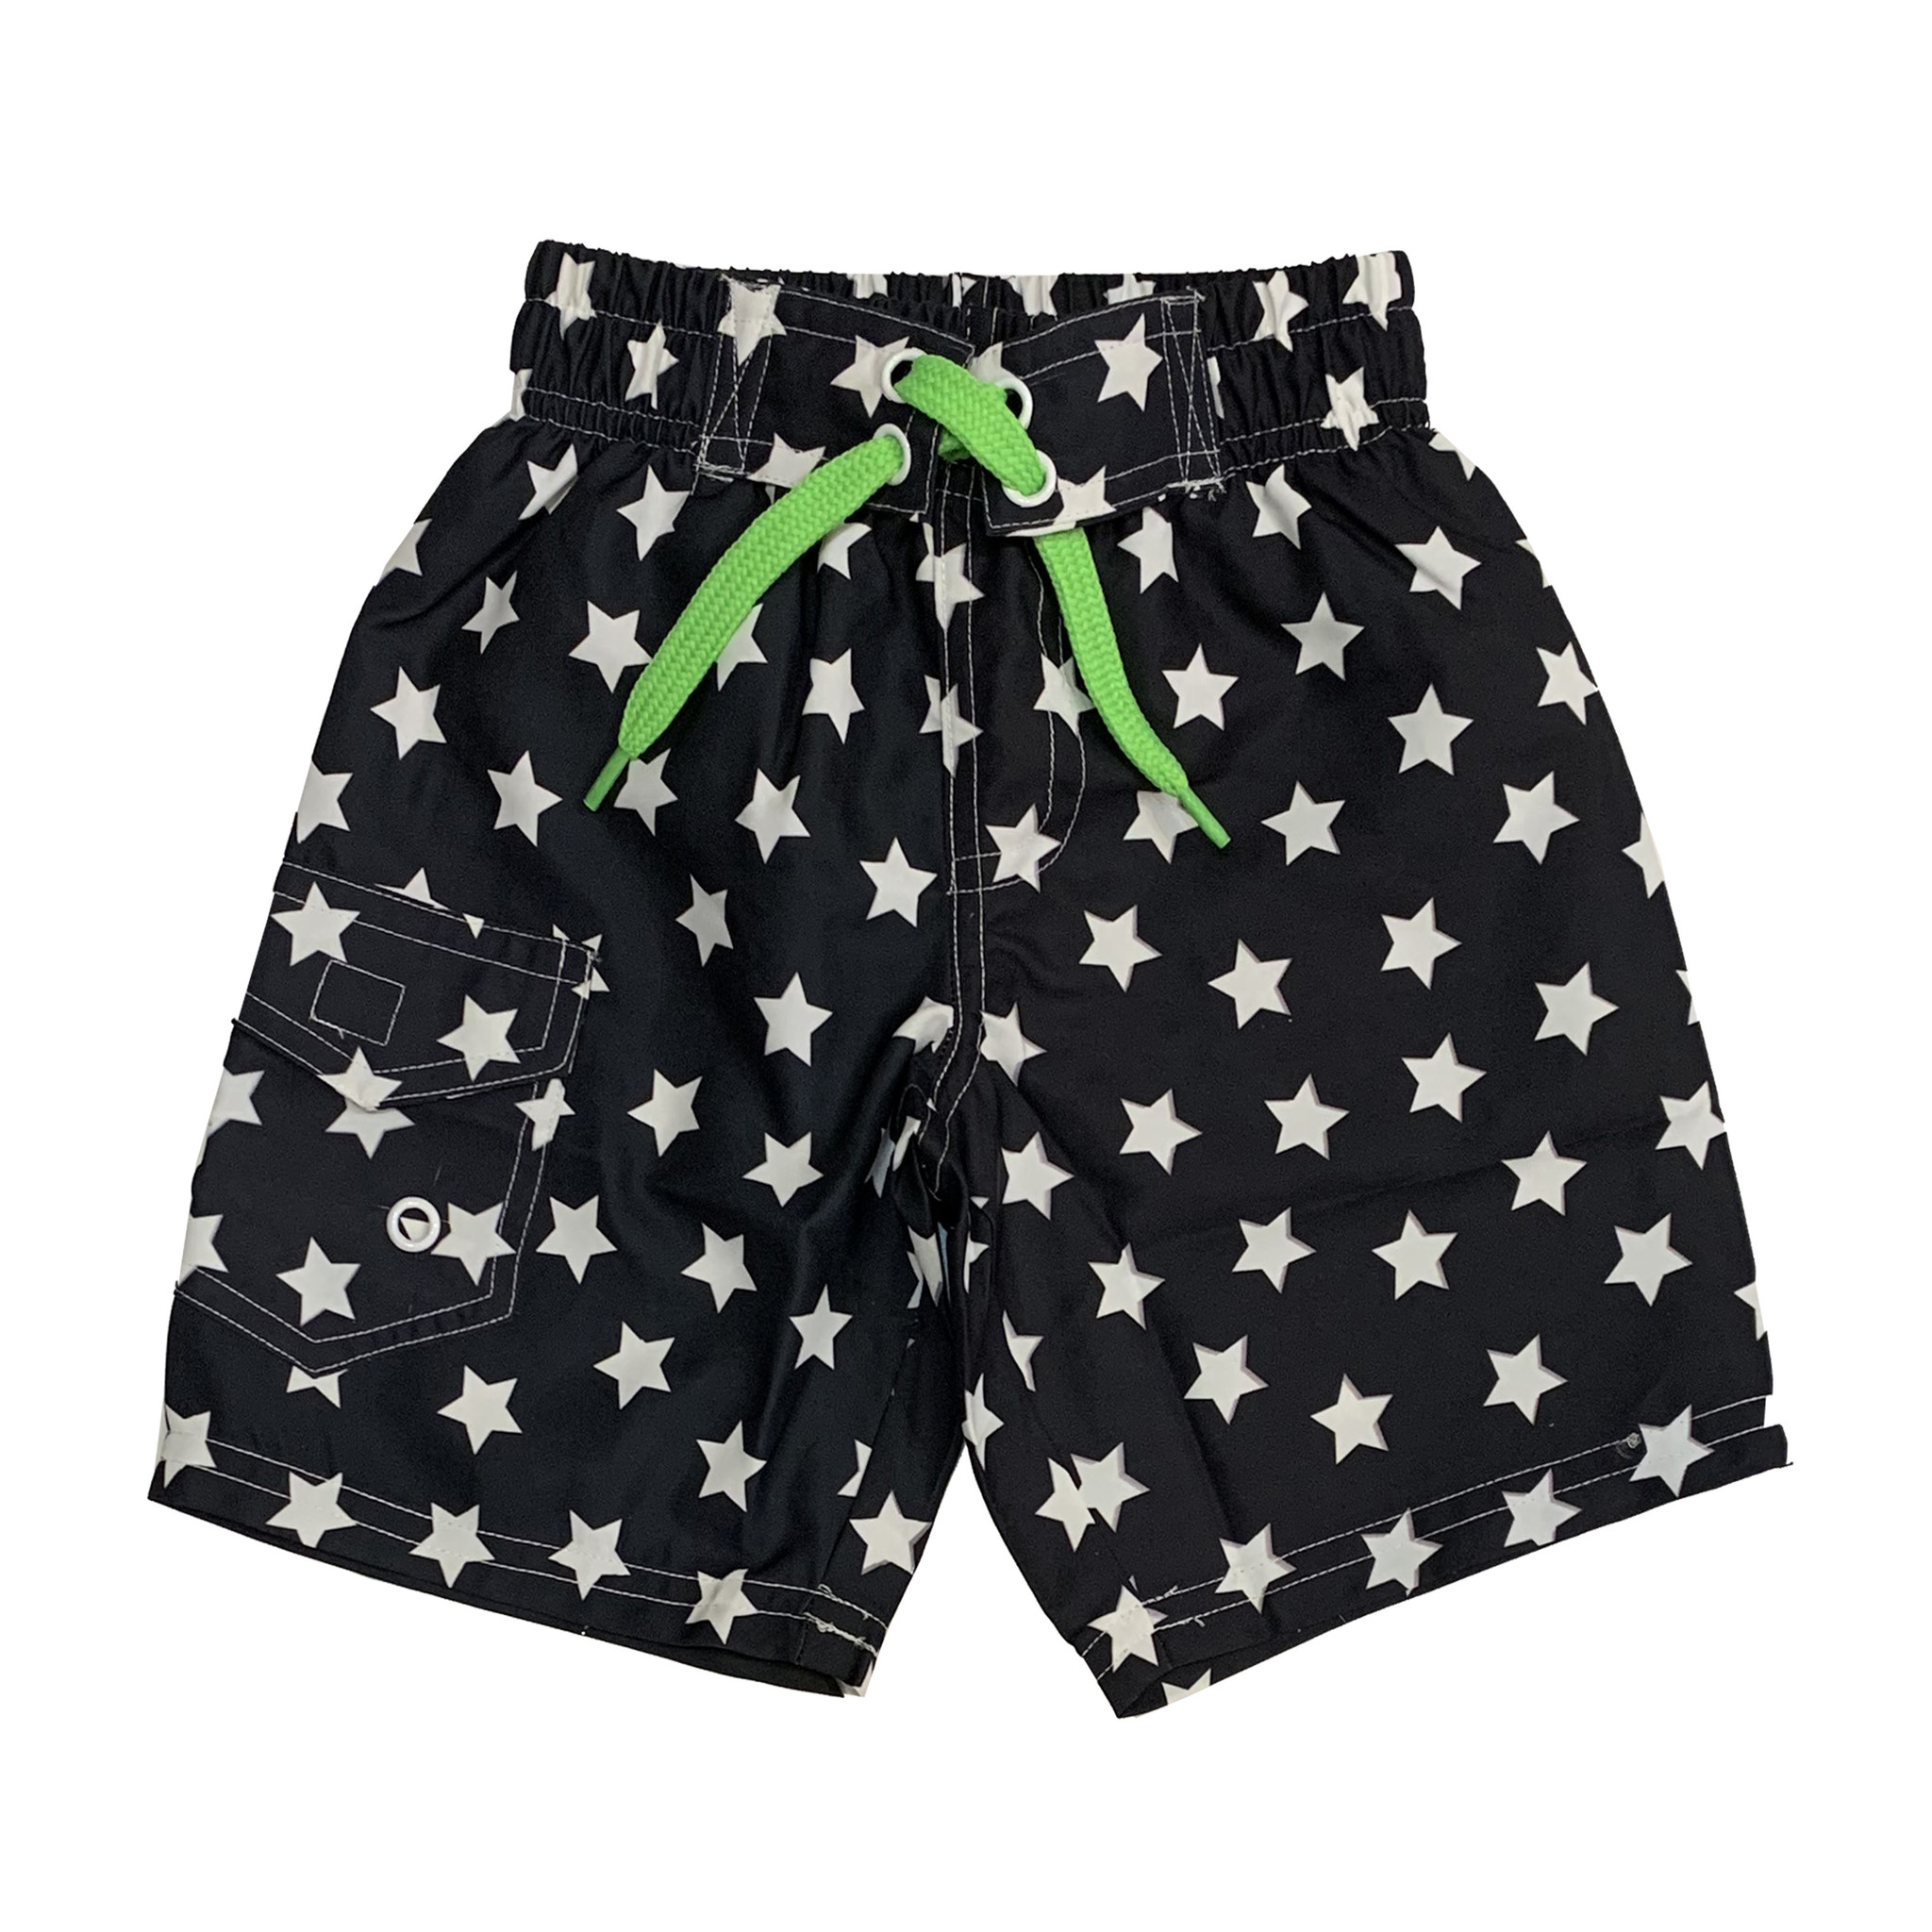 Mish Infant Black & White Stars Swimsuit